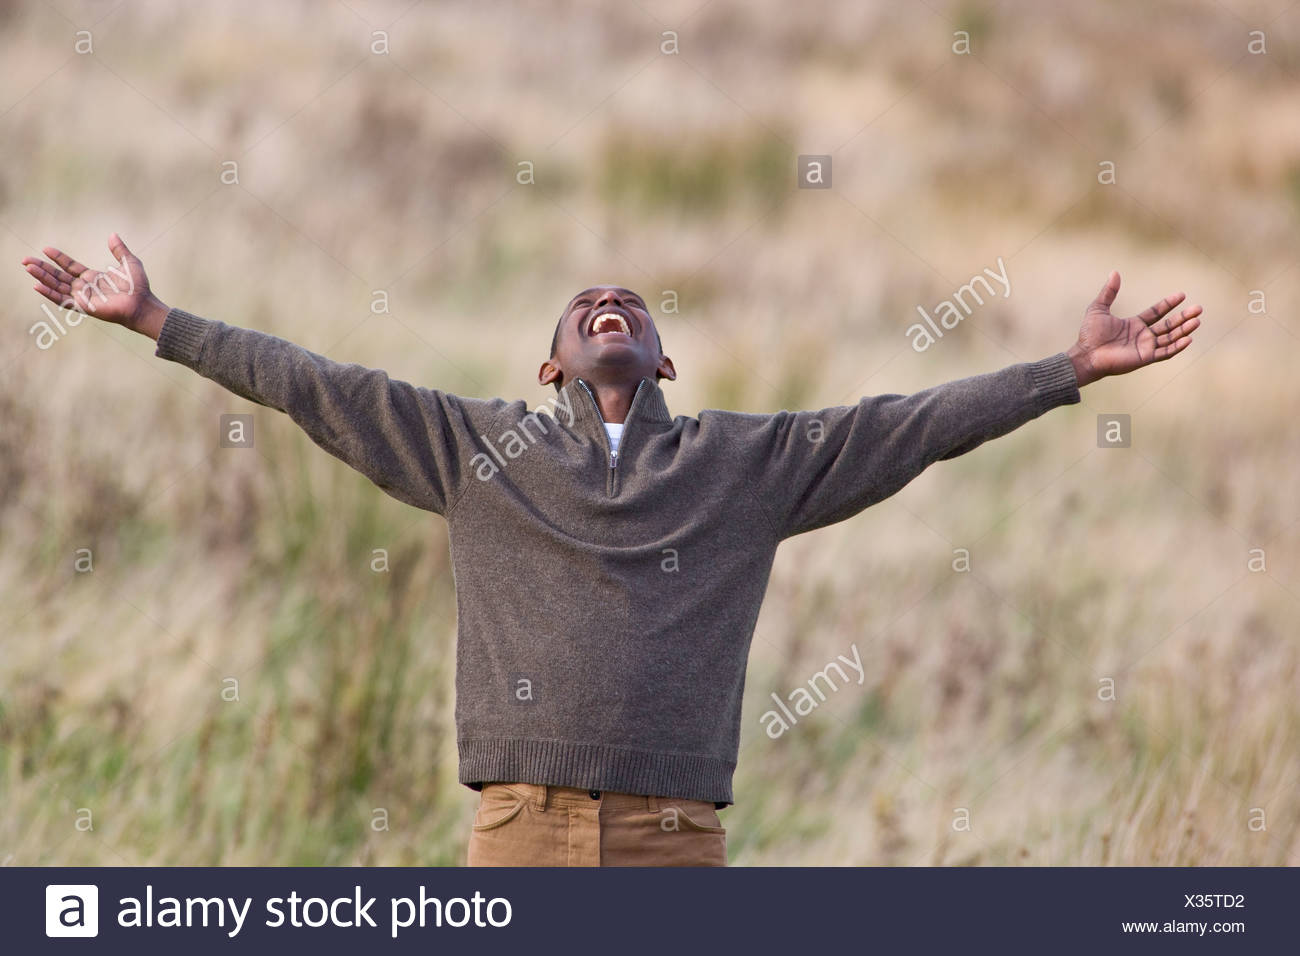 Exuberant man in field with arms outstretched - Stock Image